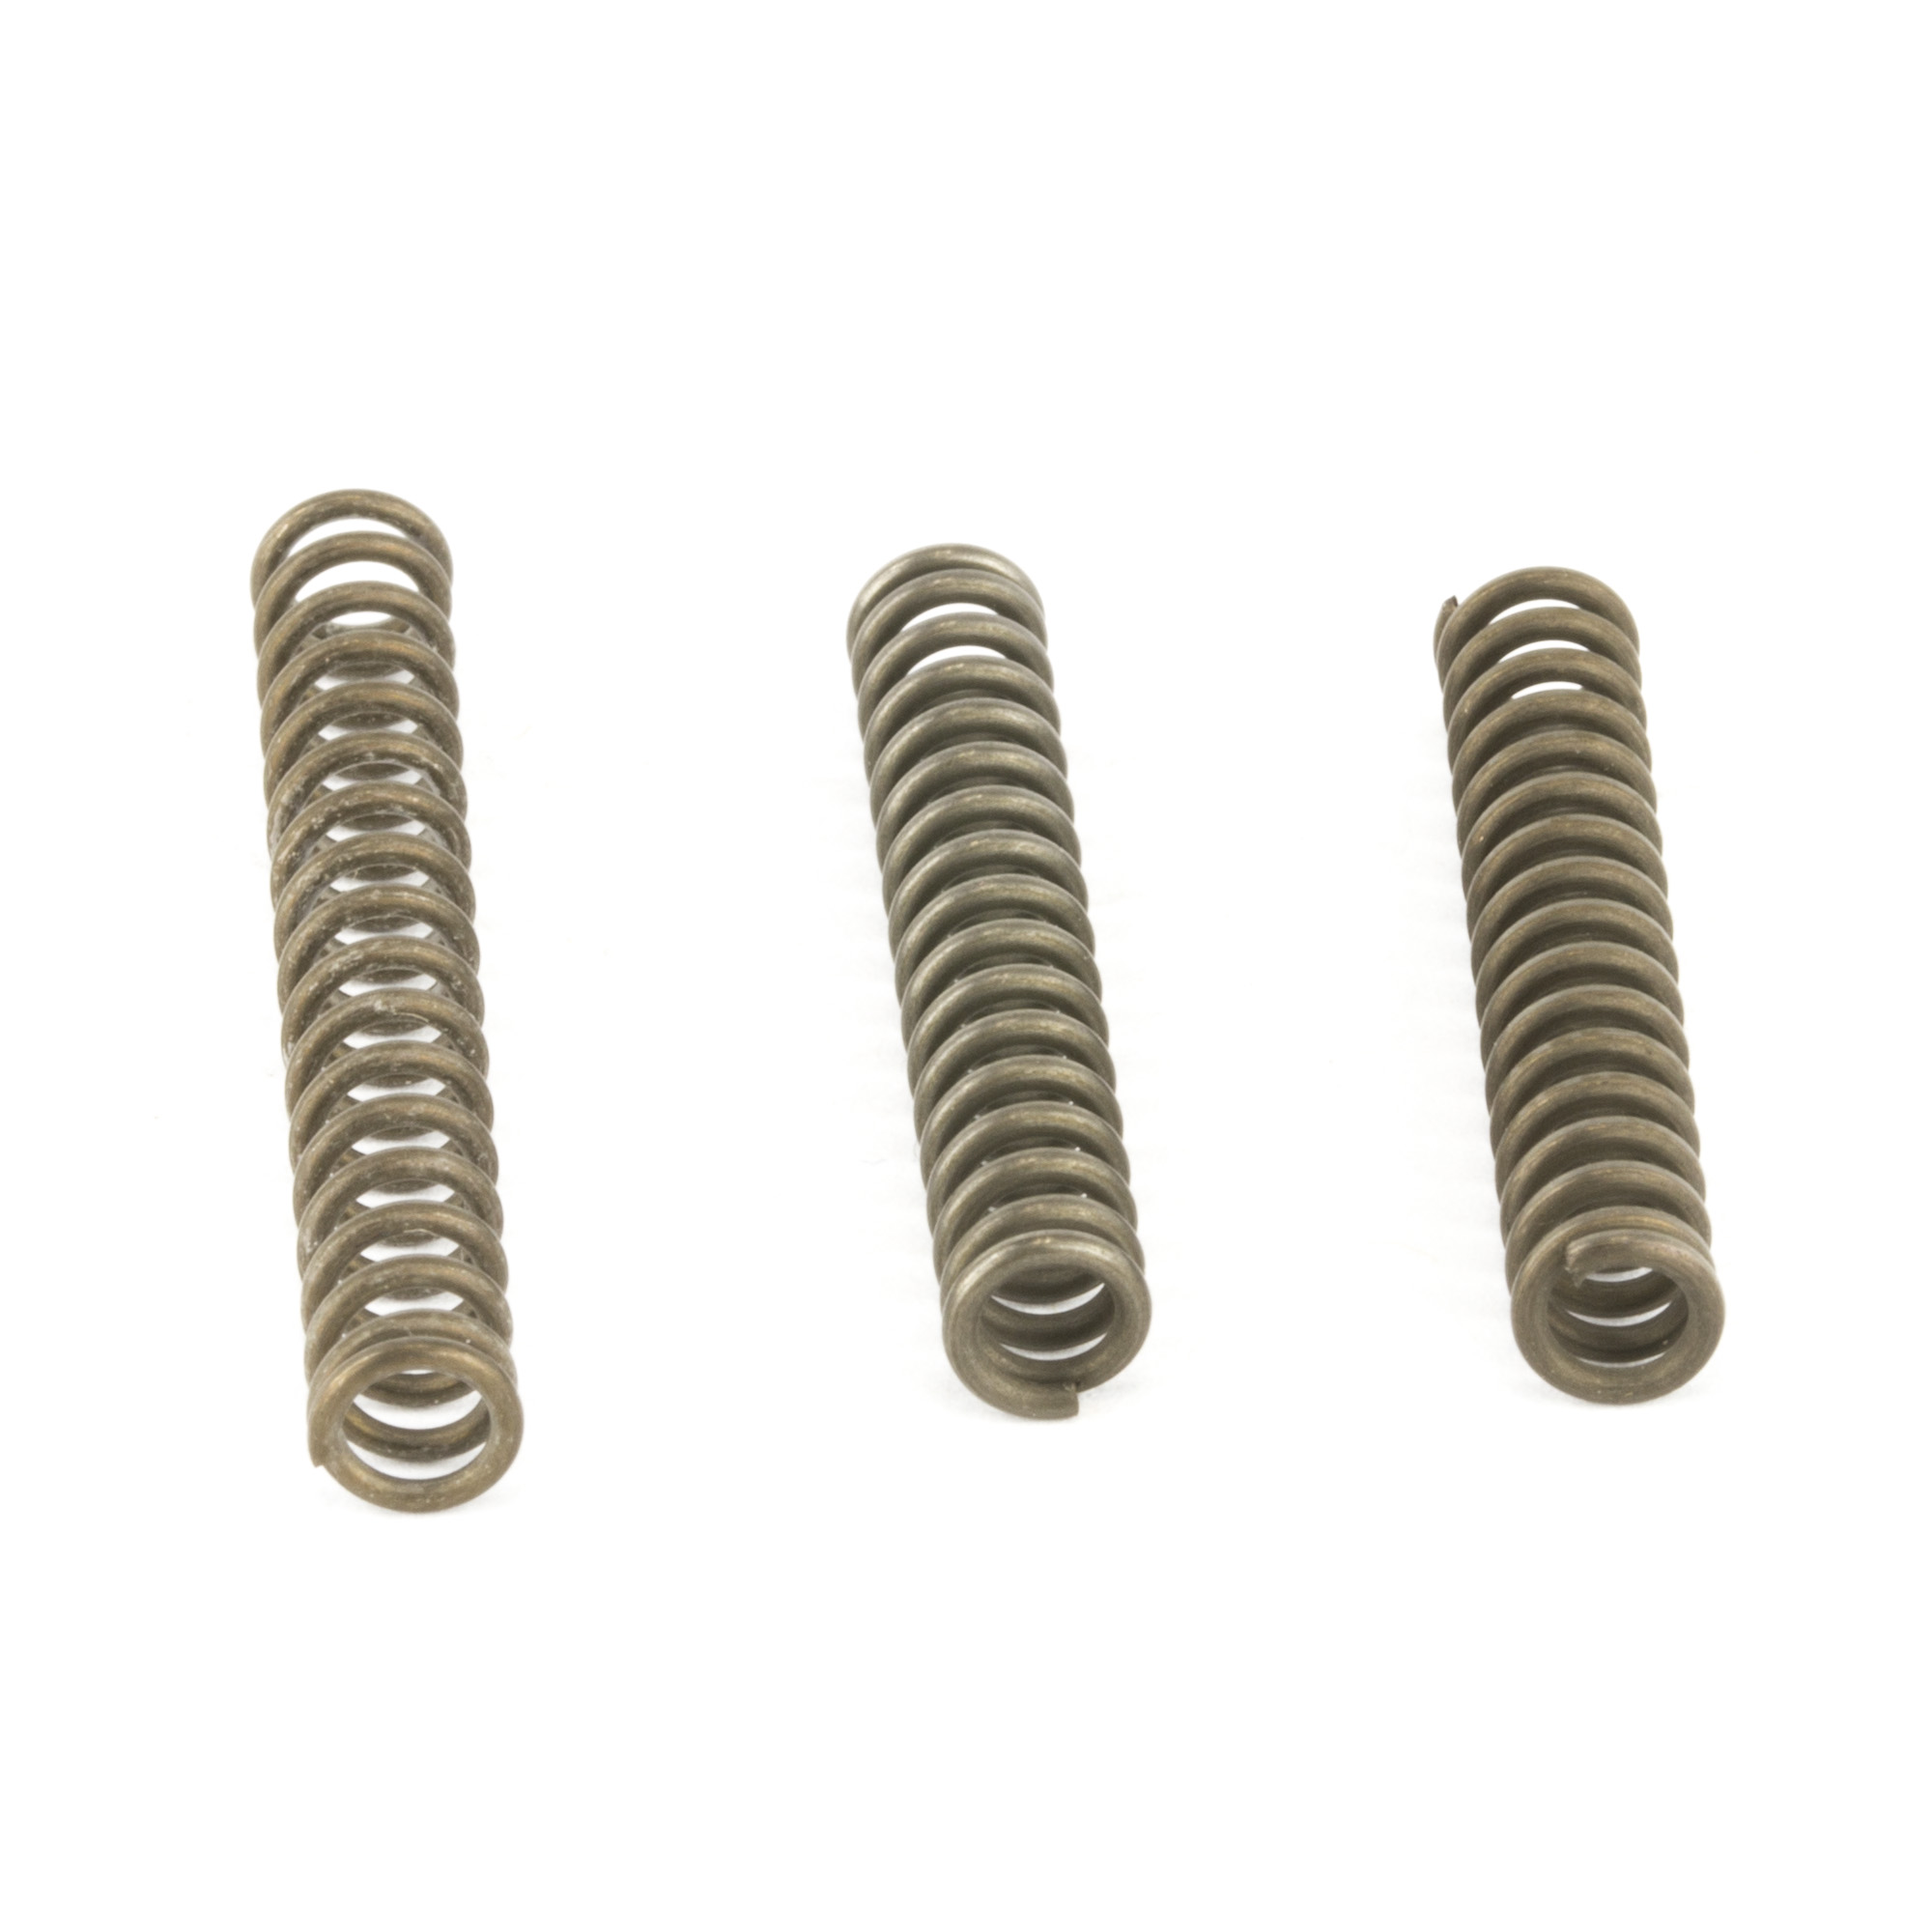 "Custom-Tune Spring Kits are designed to easily and inexpensively improve your revolver's action and functionality. These quality spring kits feature the finest gun springs available"" made from high tensile spring wire for the finest possible action tuning jobs. Kits include the various springs necessary to assure reliable function"" smooth operation"" consistency and long life. When only the best will do"" Wilson Combat ""Custom-Tune"" spring kits are the only choice."